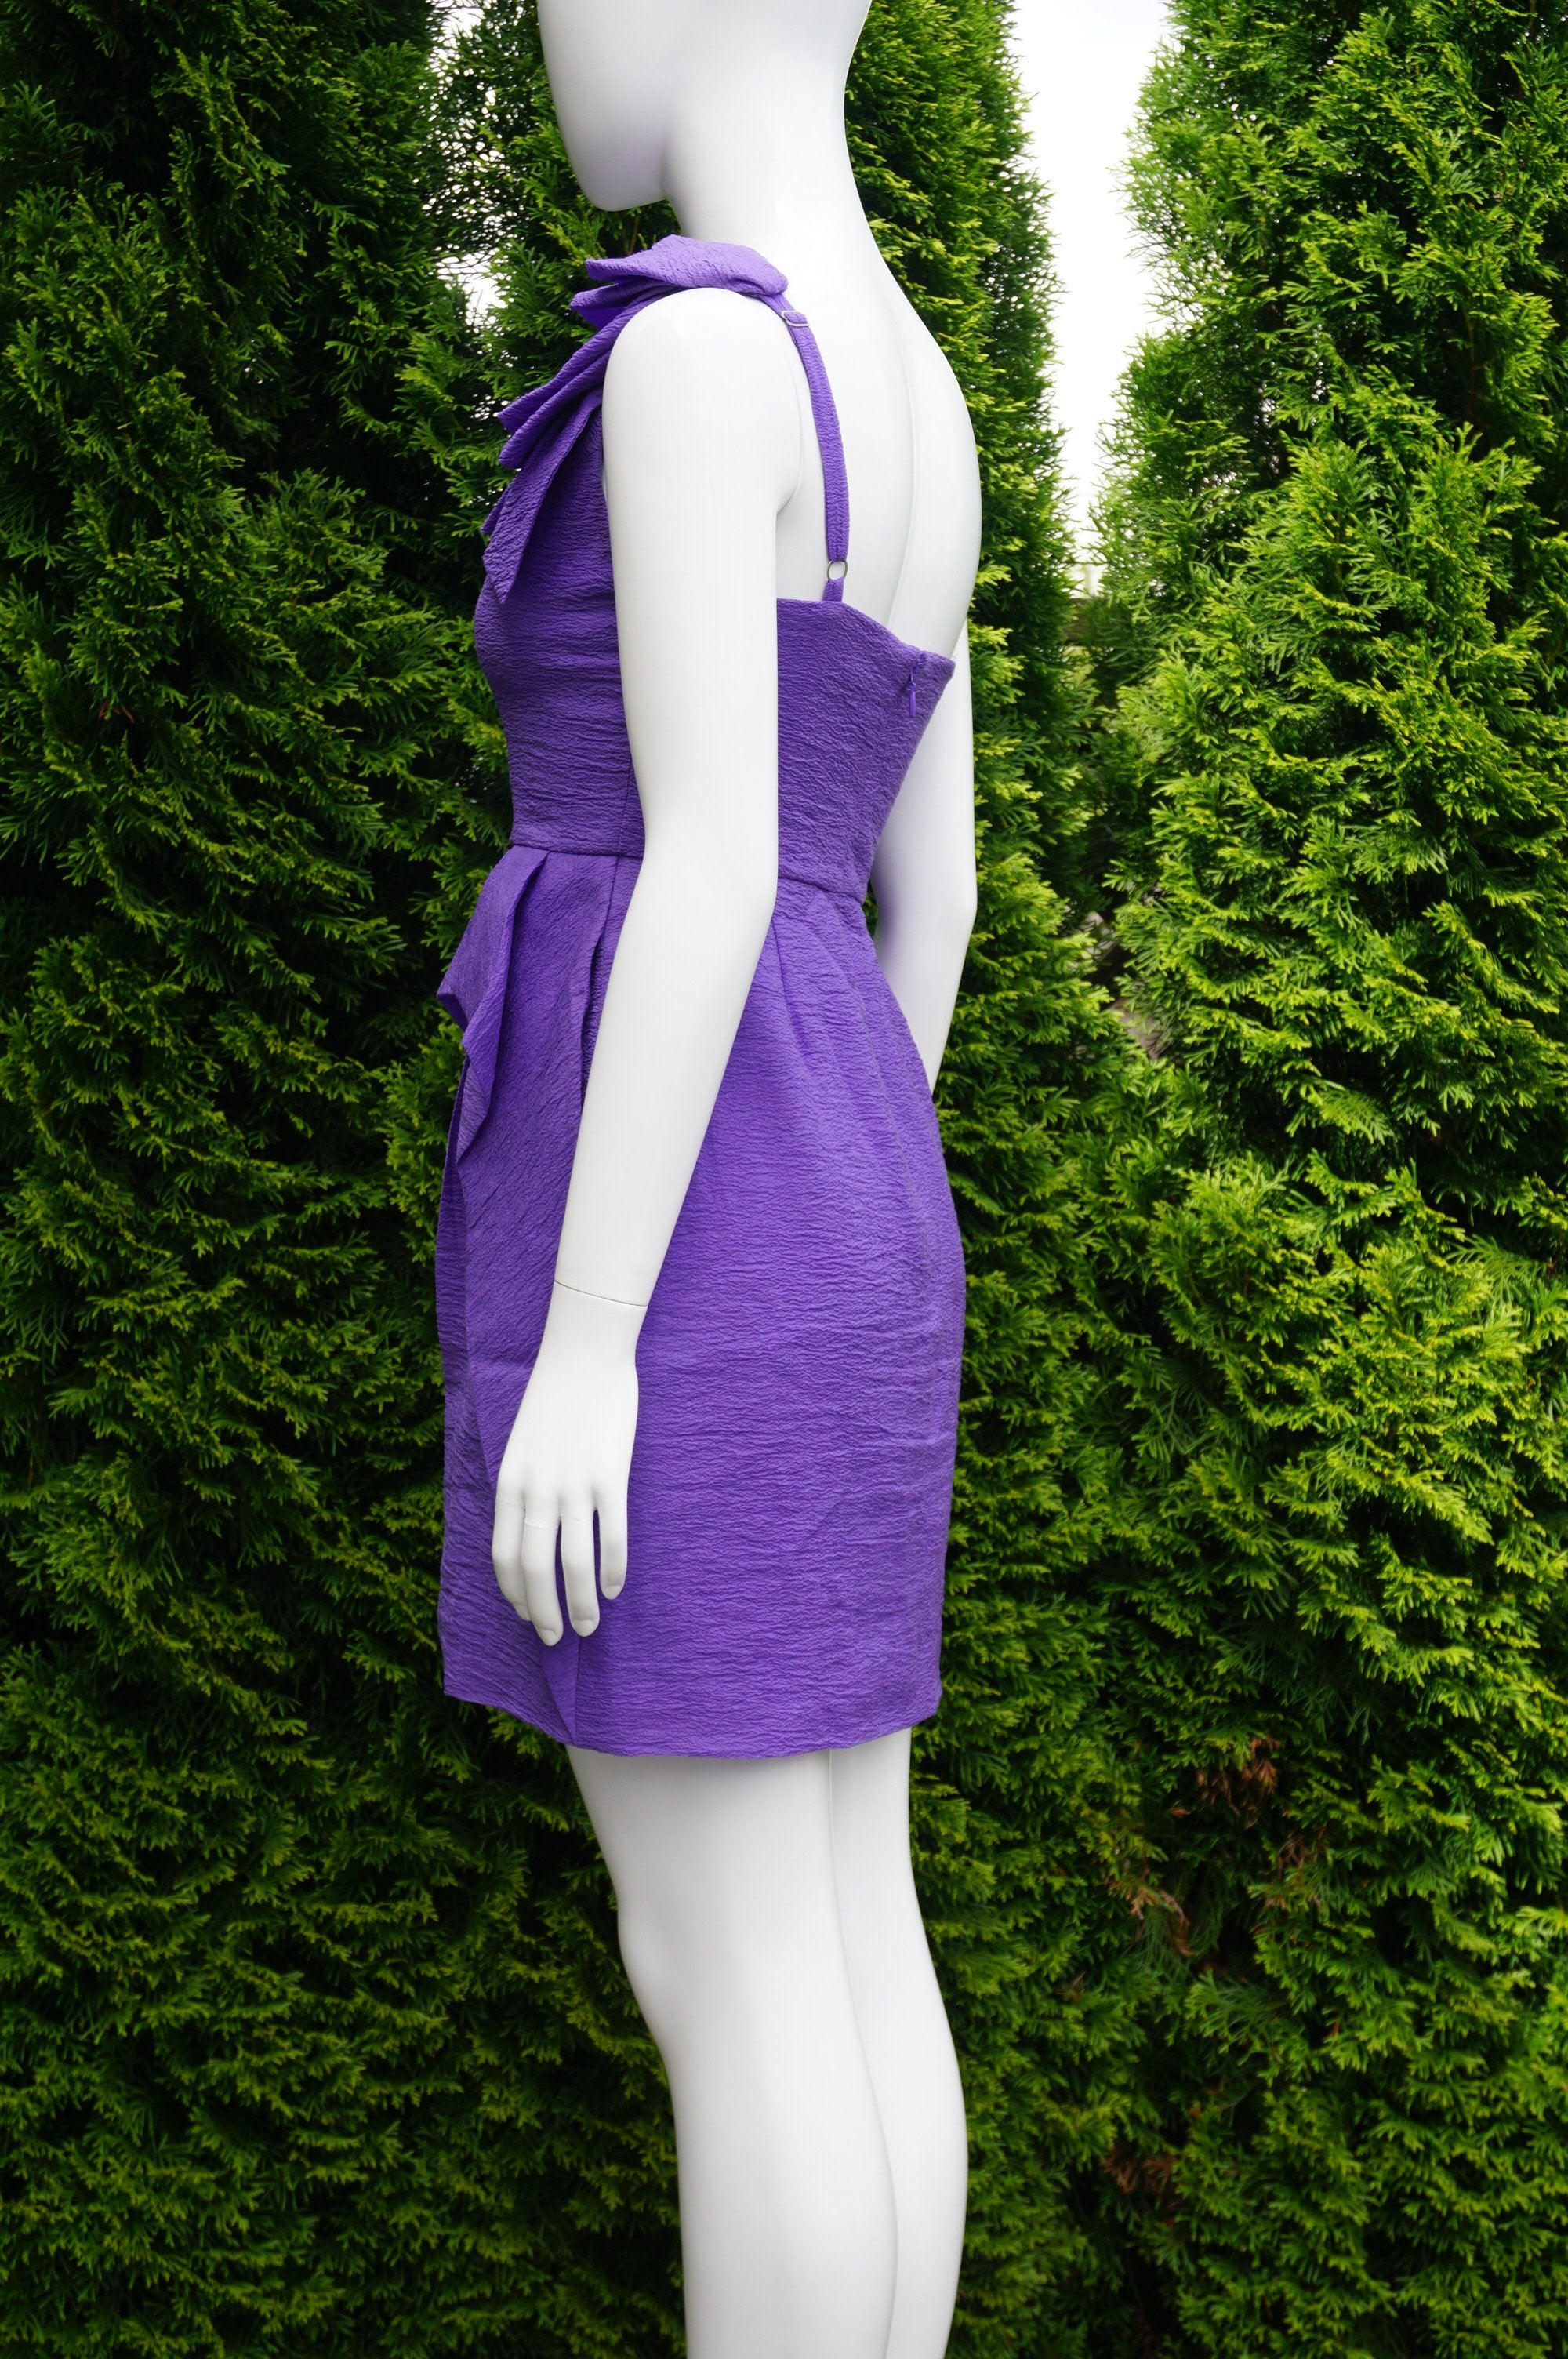 BCBCMAXAZRIA Asymmetrical 3D Ruffle One Shoulder Dress with Ruffle Pencil Skirt, Solid Purple 3D Ruffle One Shoulder Ruffle Skirt Dress, Bridemaids Purple Sheath Asymmetrical Dress, Ruffle Flower One Shoulder Purple Asymmetrical Sheath Dress